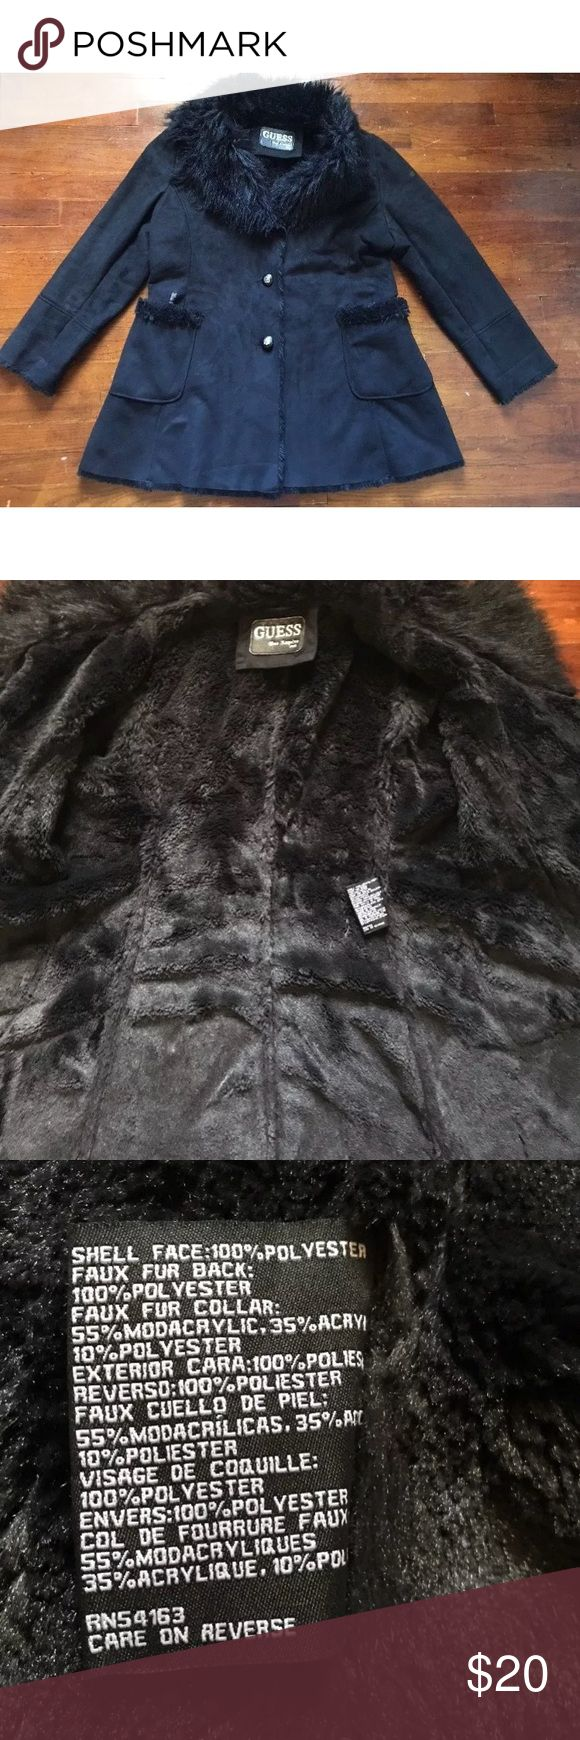 """Vintage guess faux fur oversized coat black medium Guess vintage fur coat!  Faux suede and fur  No size tag but guessing a medium from fit  Chest across 21""""  Sleeves 25""""  Length 31""""  Has a huge fur collar and fur trim in pockets  The one pocket has some sticky tape or something on it. I recommend this is dry cleaned as soon as you get it or before you wear.  There is some tiny piling/wear on the faux suede in some areas Guess Jackets & Coats"""